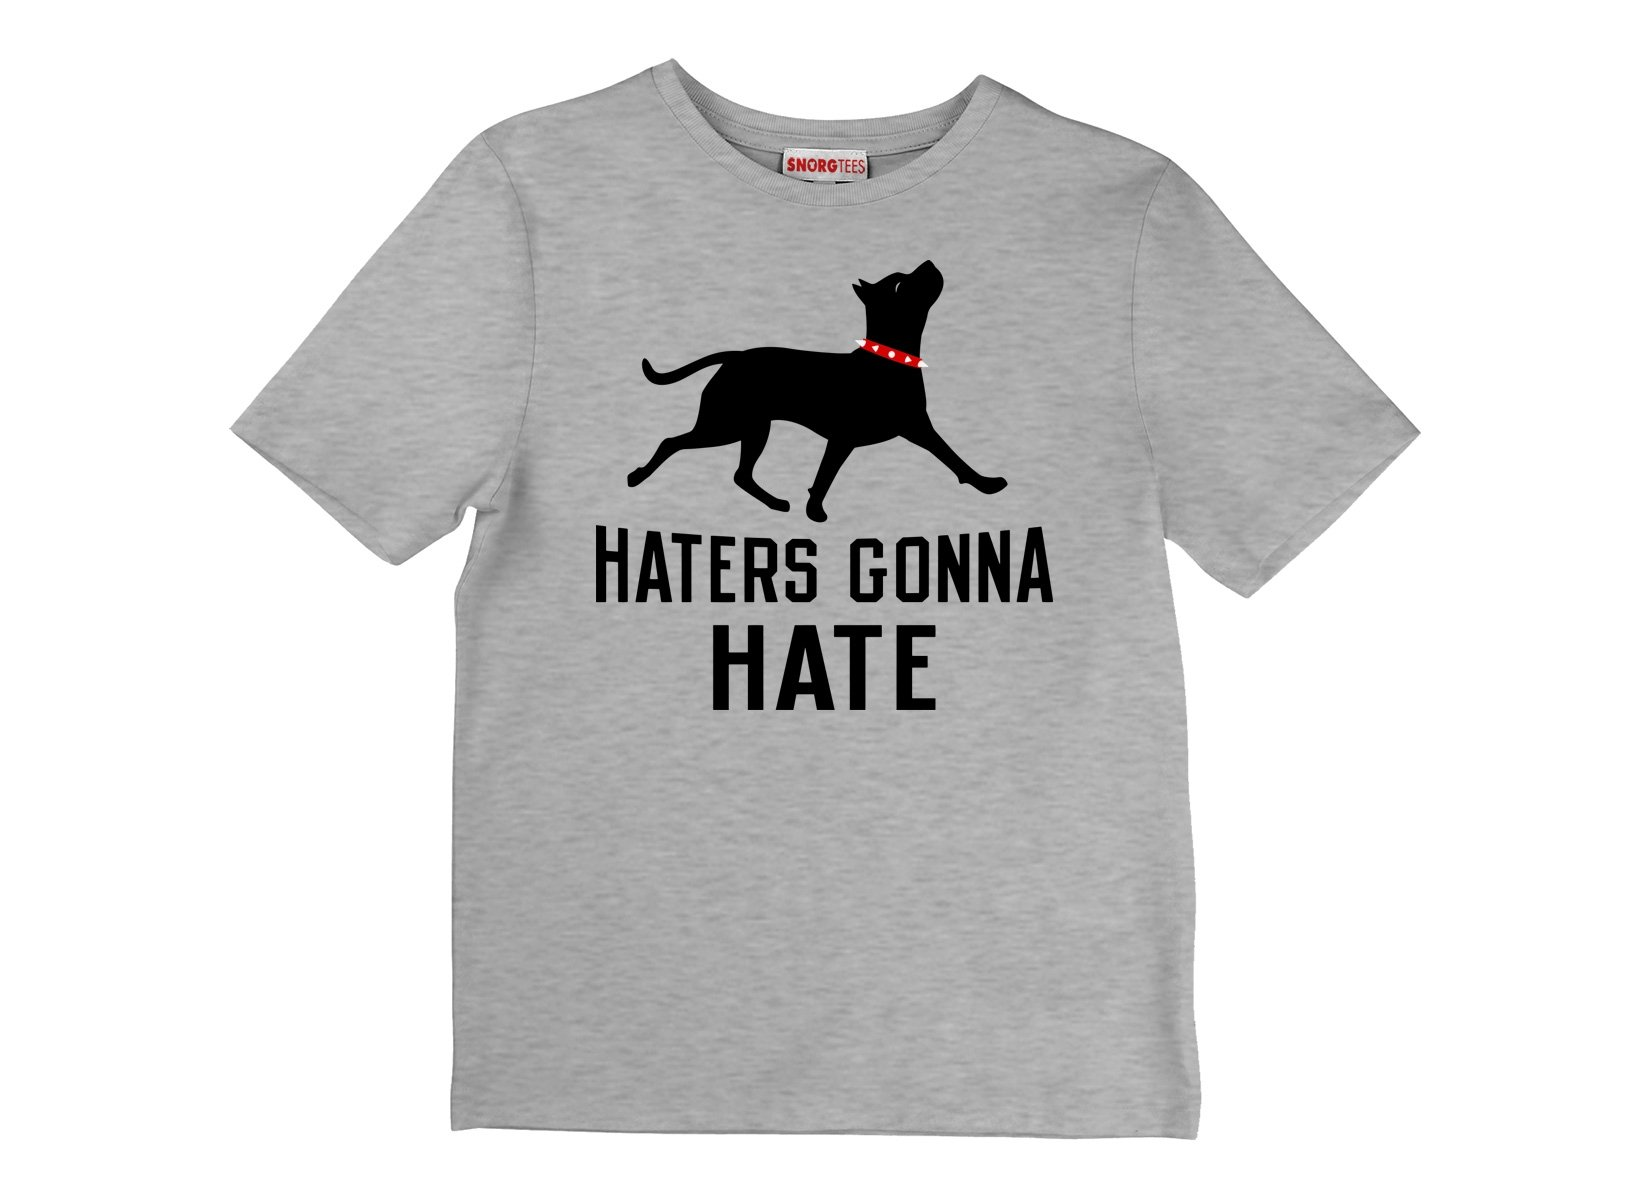 Haters Gonna Hate Pit on Kids T-Shirt